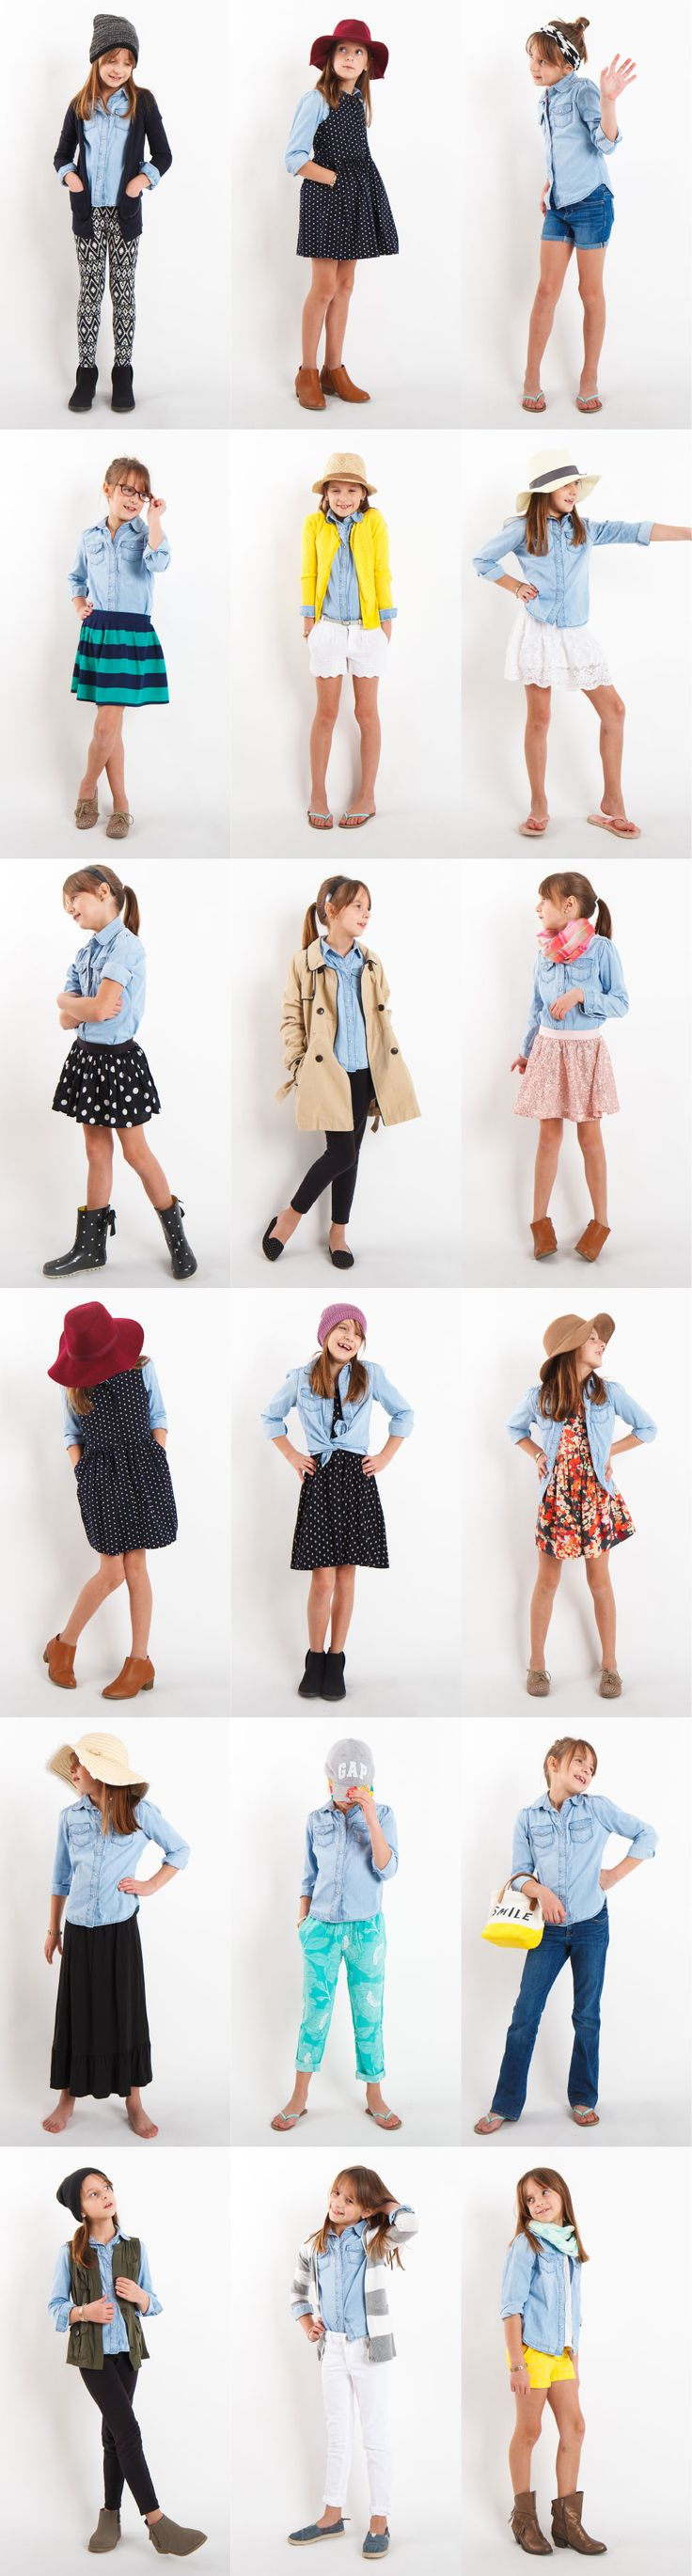 Chambray Shirt Project: 18 outfits with one chambray shirt!